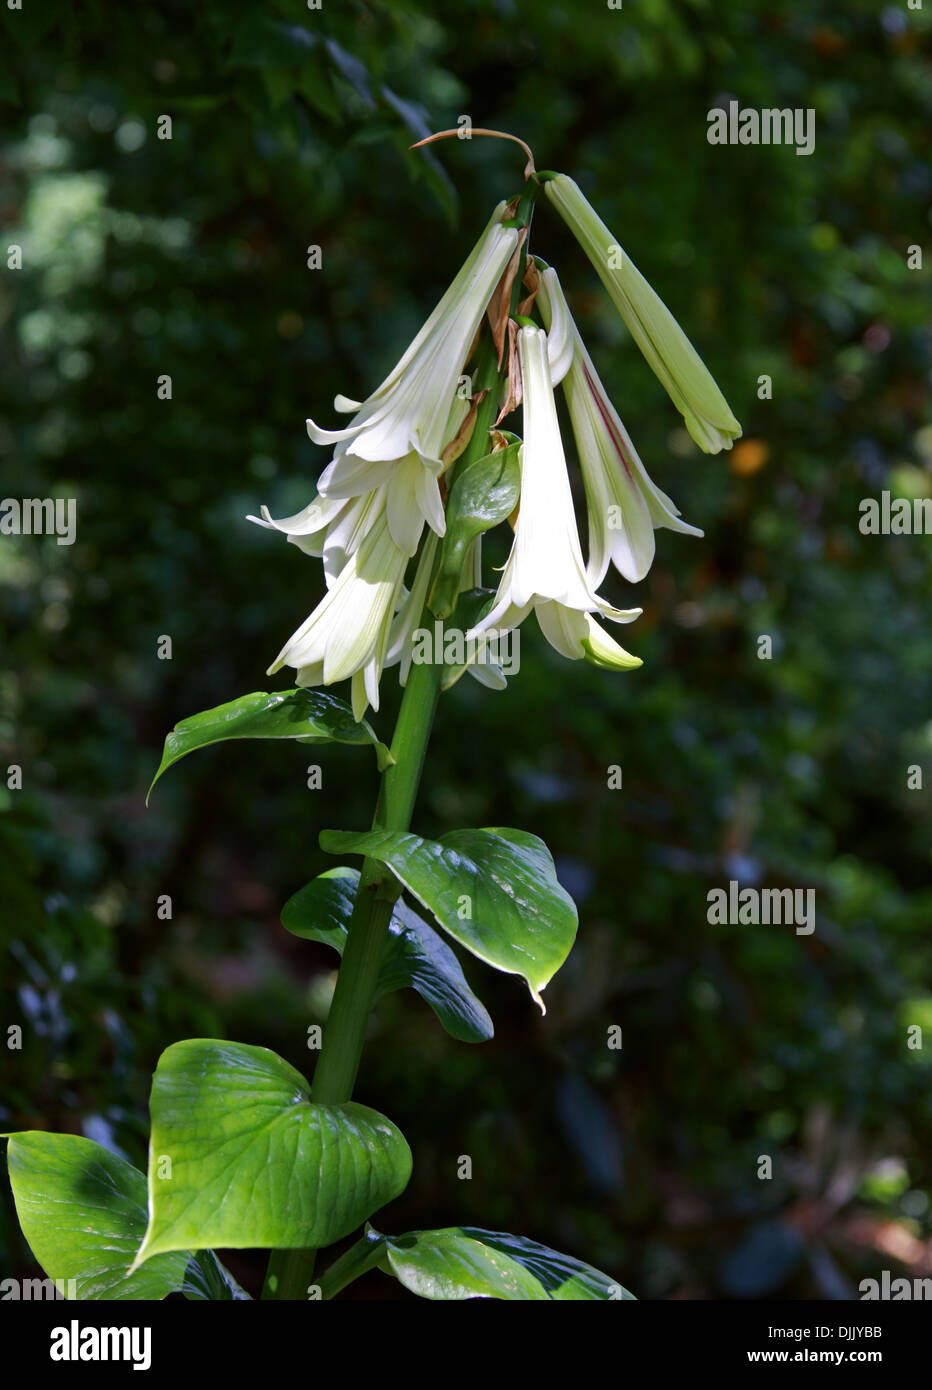 Giant Himalayan Lily, Cardiocrinum giganteum, Liliaceae. Forest Glades in the Himalayas, Japan and China. - Stock Image